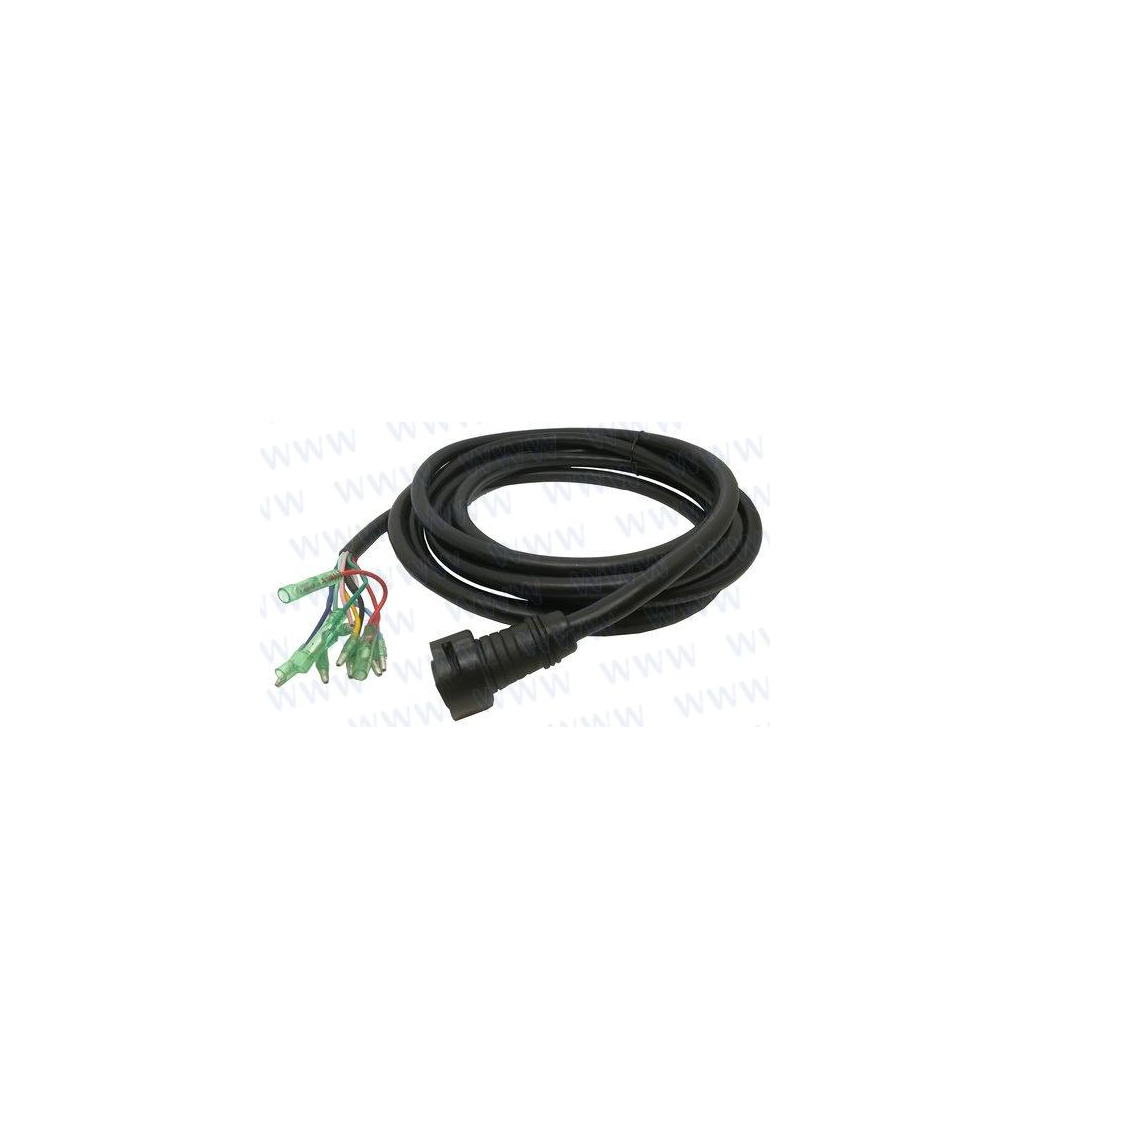 Yamaha / Parsun F40, F50, F60 CONTROL CABLE 10 pins (PAF40-08010100EI)